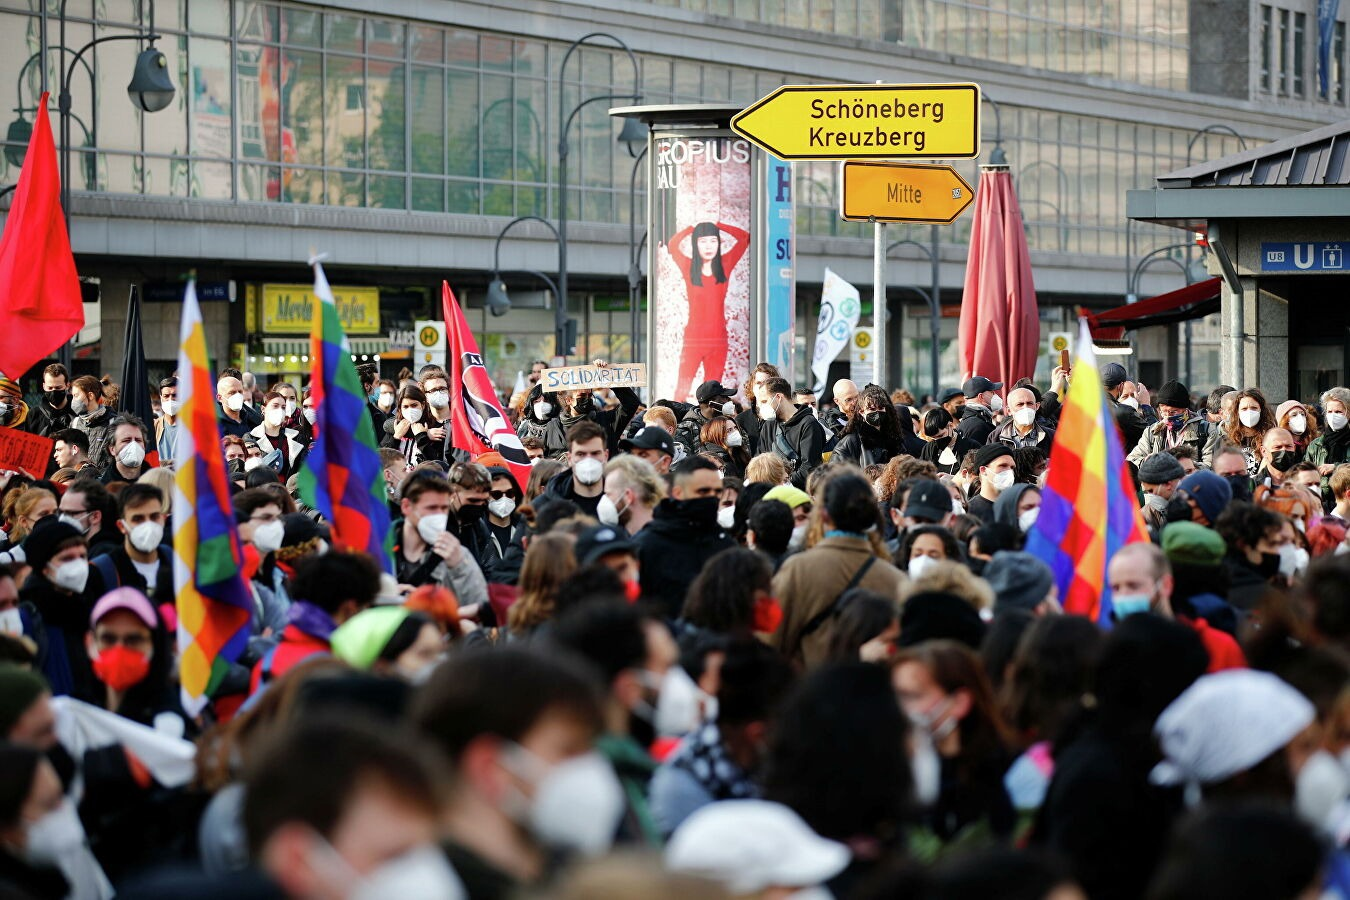 More than 200 people detained at May Day demonstration in Berlin